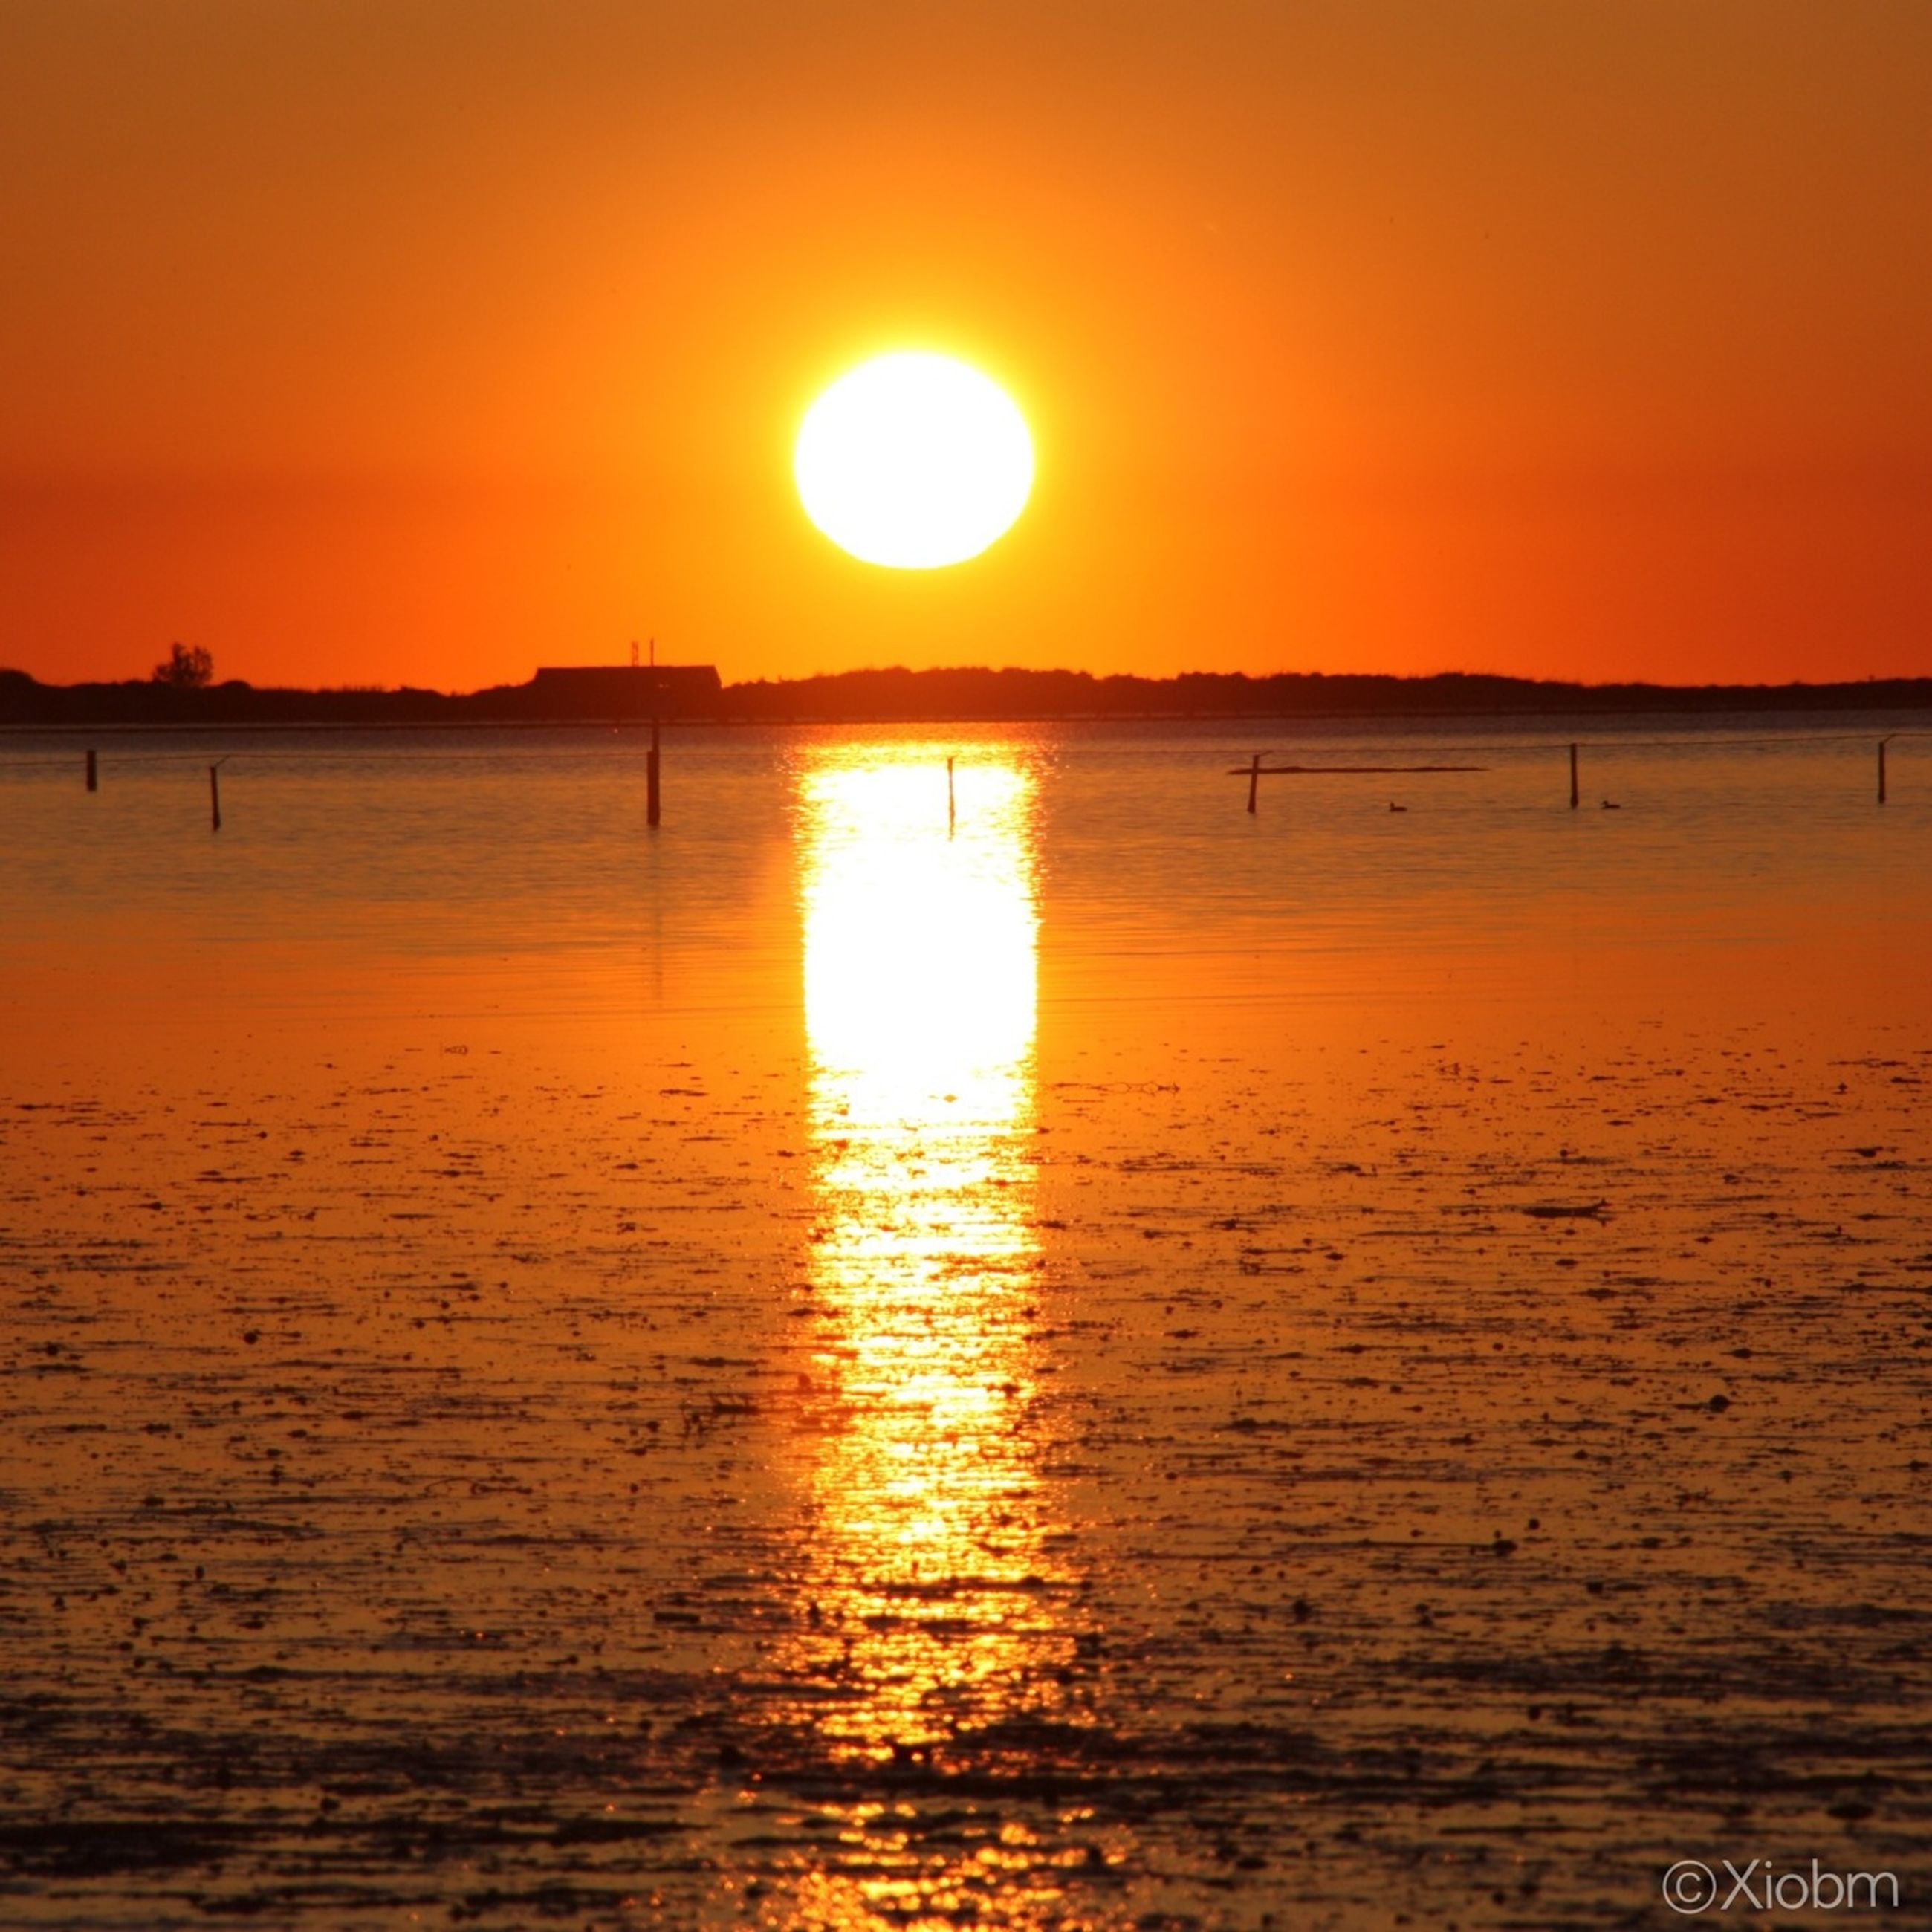 sunset, sun, orange color, water, scenics, tranquil scene, tranquility, beauty in nature, sea, idyllic, reflection, silhouette, nature, waterfront, clear sky, sunlight, sky, rippled, horizon over water, romantic sky